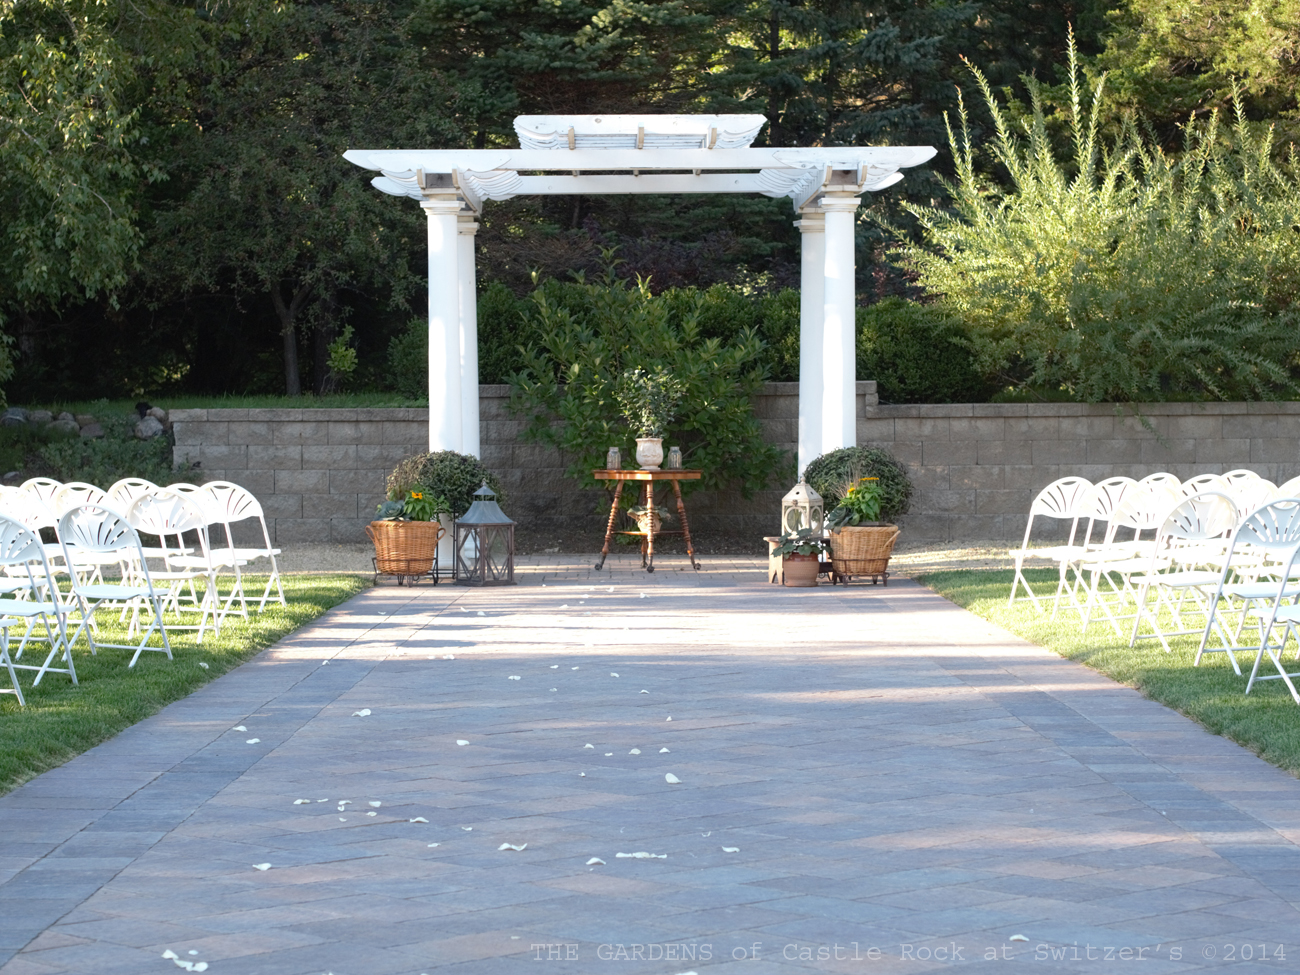 Emily & Ben at The Gardens - The Paver Walk of the Grand Promenade